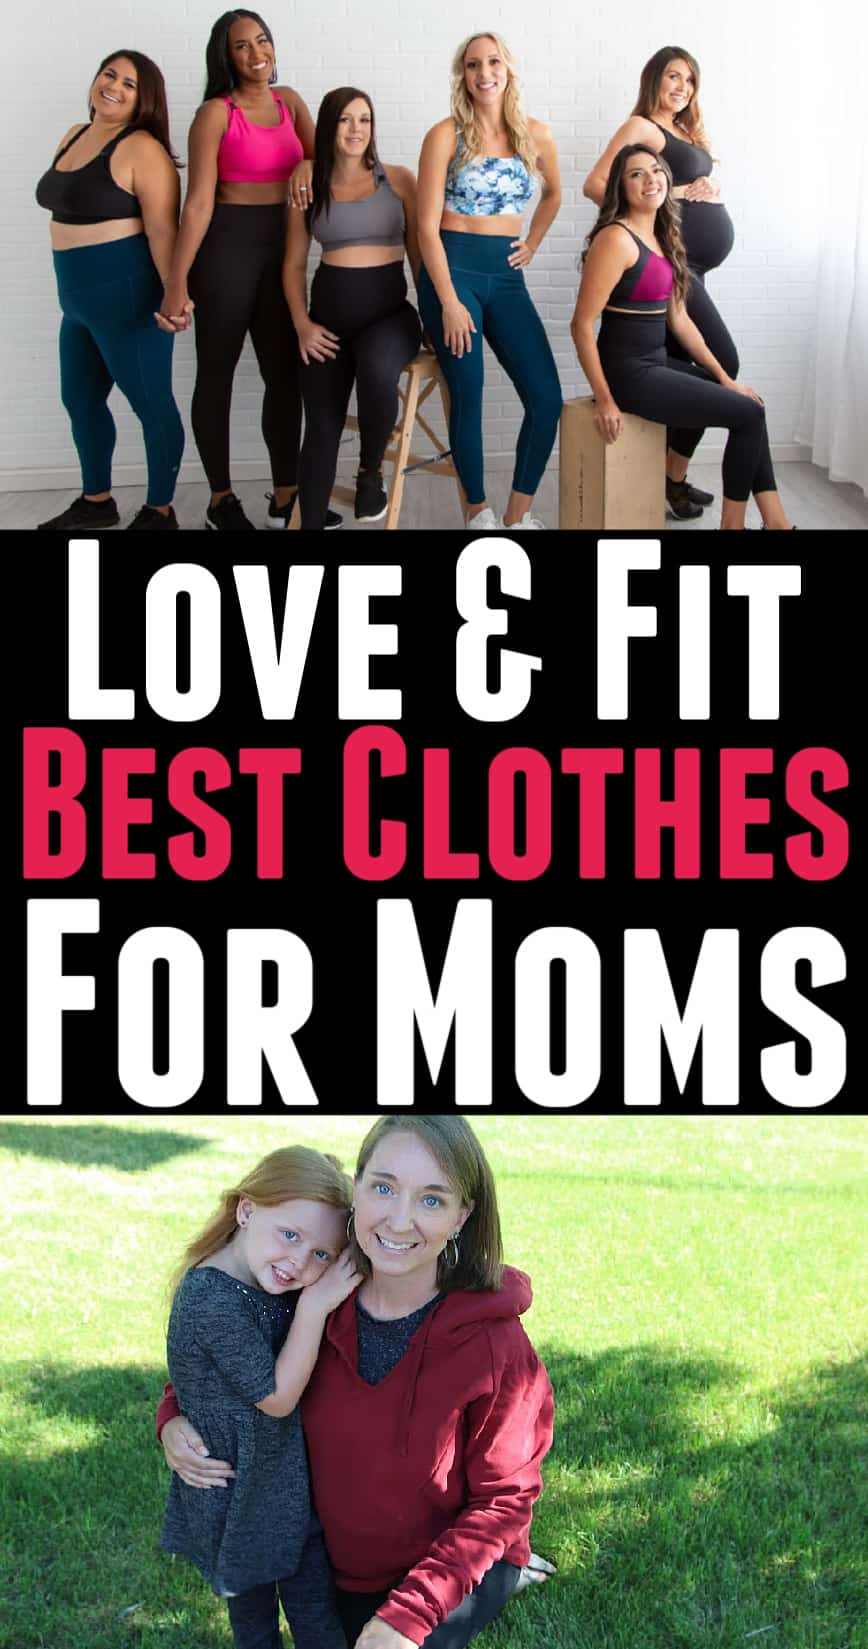 mothers - Love And Fit Activewear For Moms - 12 Simple Ways To Love Yourself As A Mom